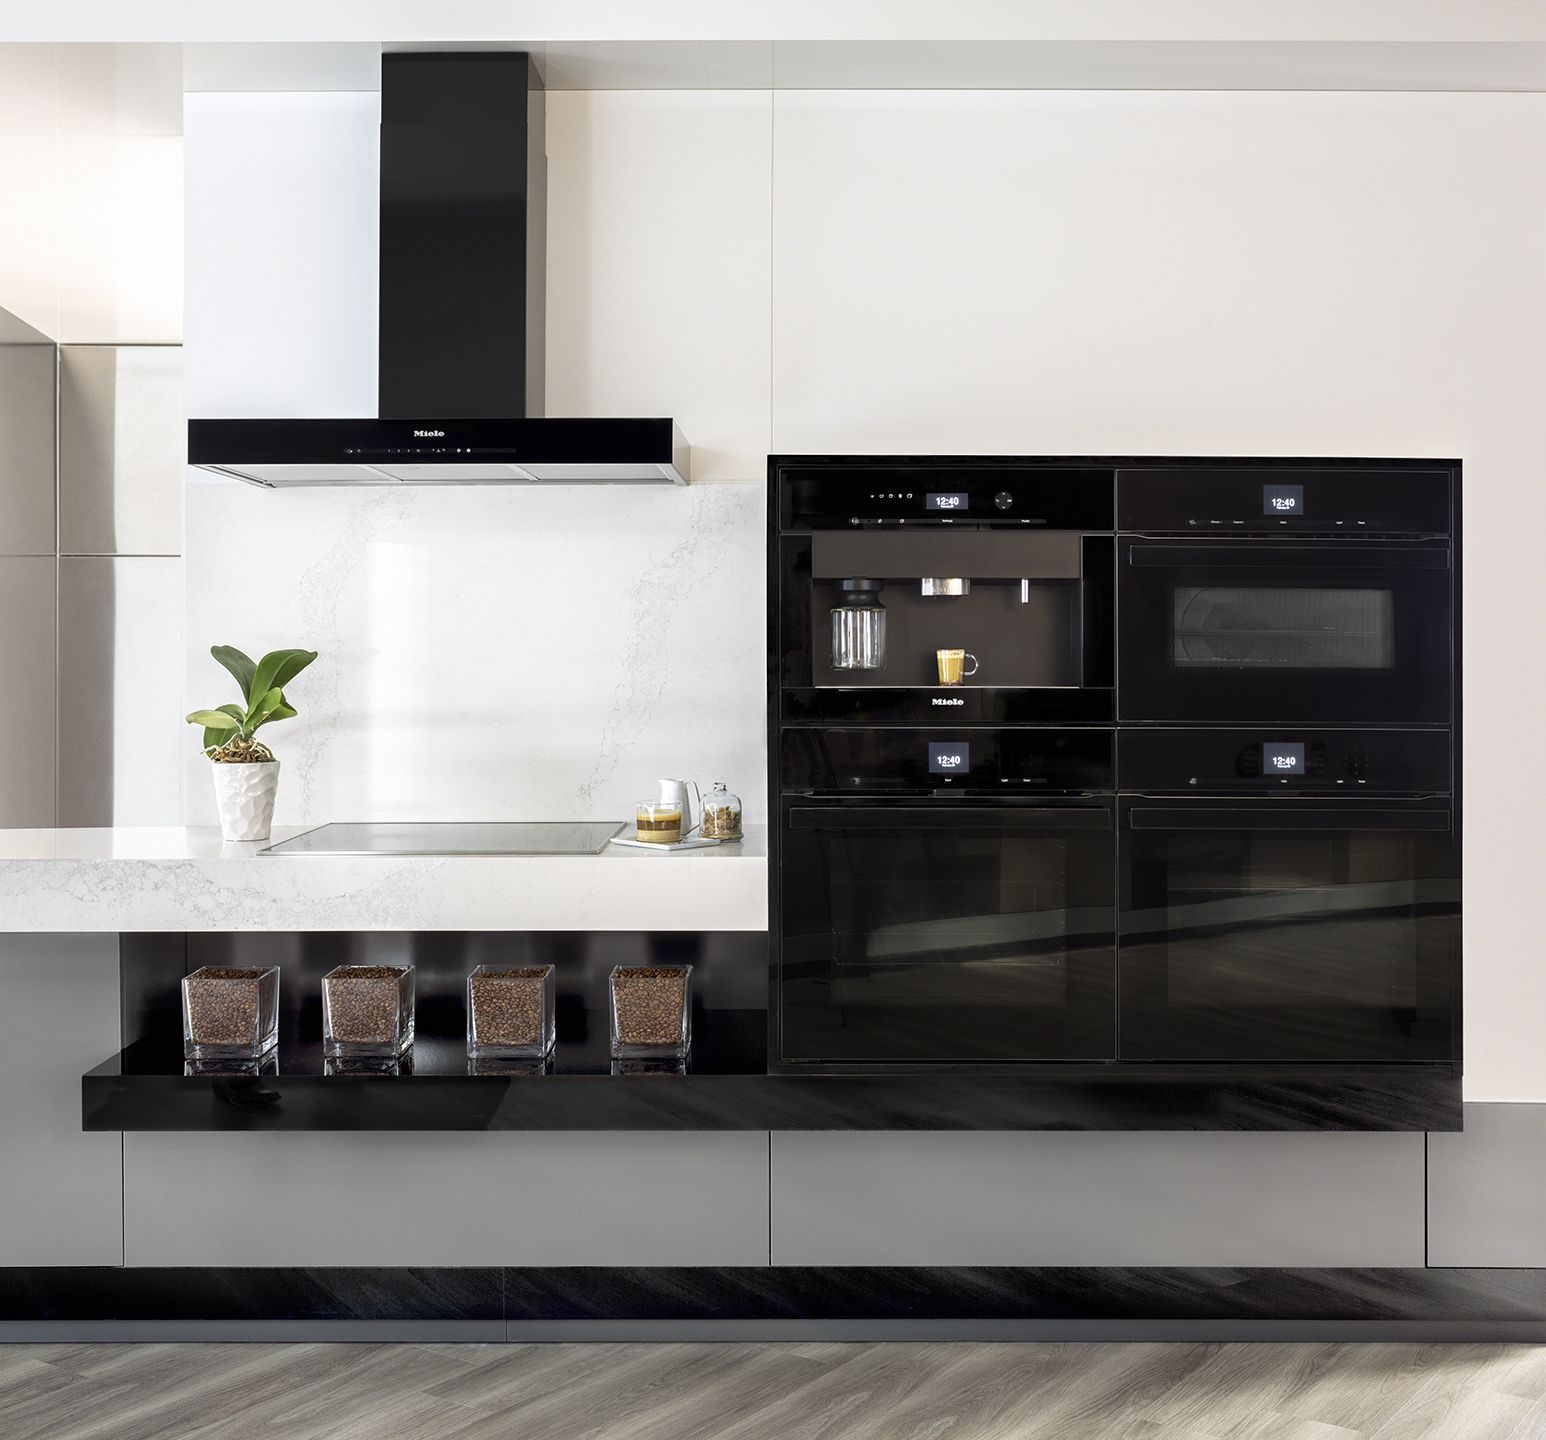 Miele Kitchen Design Design For Life Miele Built In Appliances Are Made To